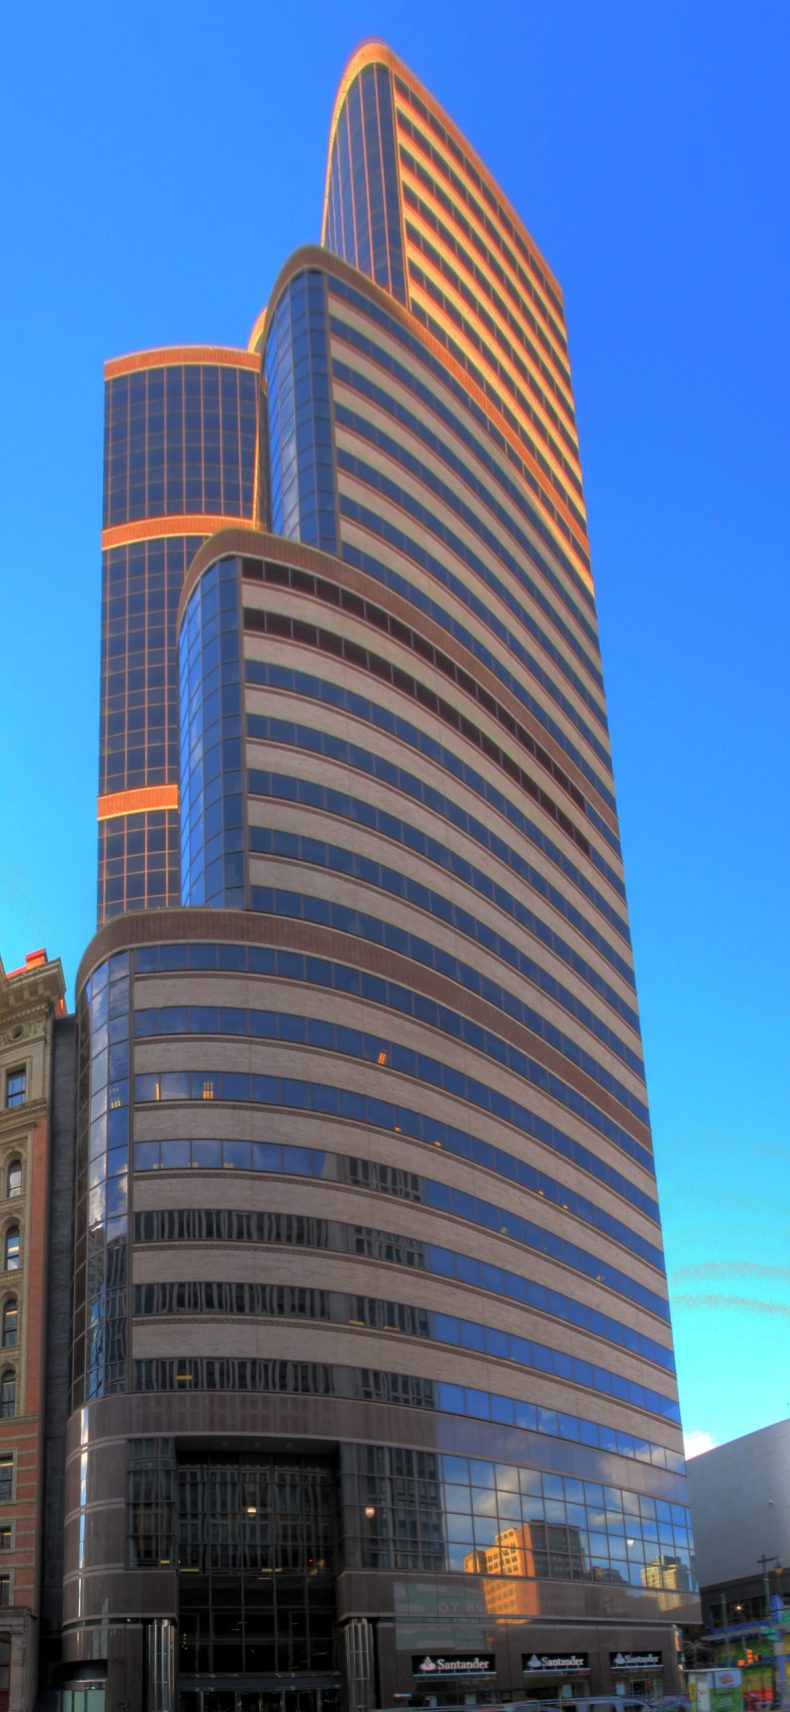 Jefferson (formerly Aramark) Tower 1101 Market Street Philadelphia, PA Copyright 2019, Bob Bruhin. All rights reserved.